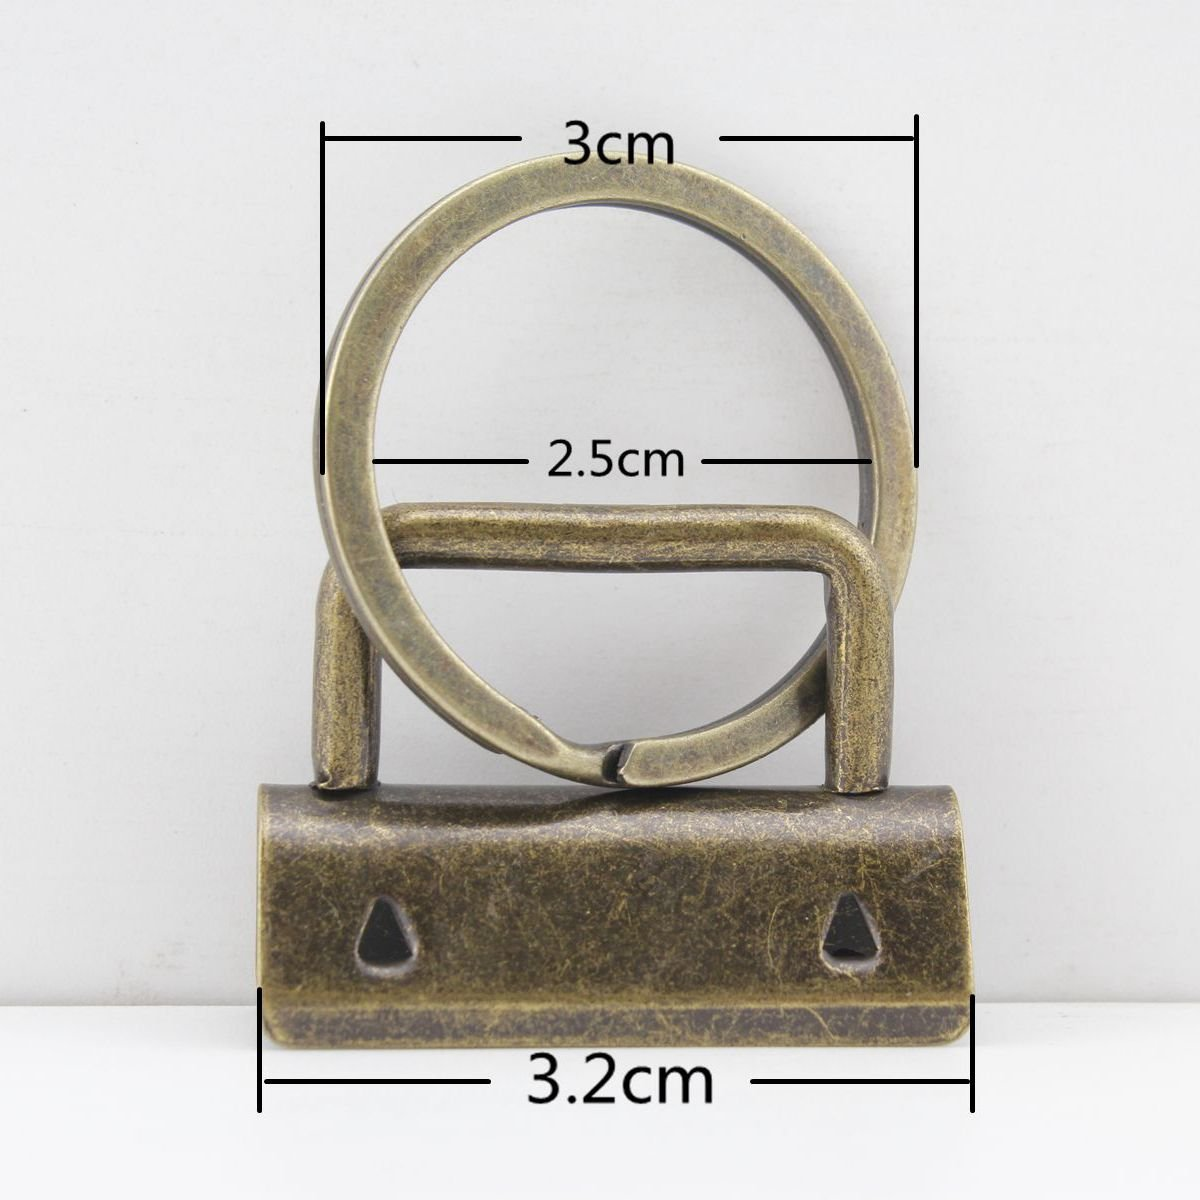 100 sets, 1 1/4 inch Heavy duty metal Key fob hardware with Split Rings Key Rings For wristlets with fabric ribbon webbing, Anti brass, key fob wholesale. 100 sets per lot AC96B 3DANCraftit